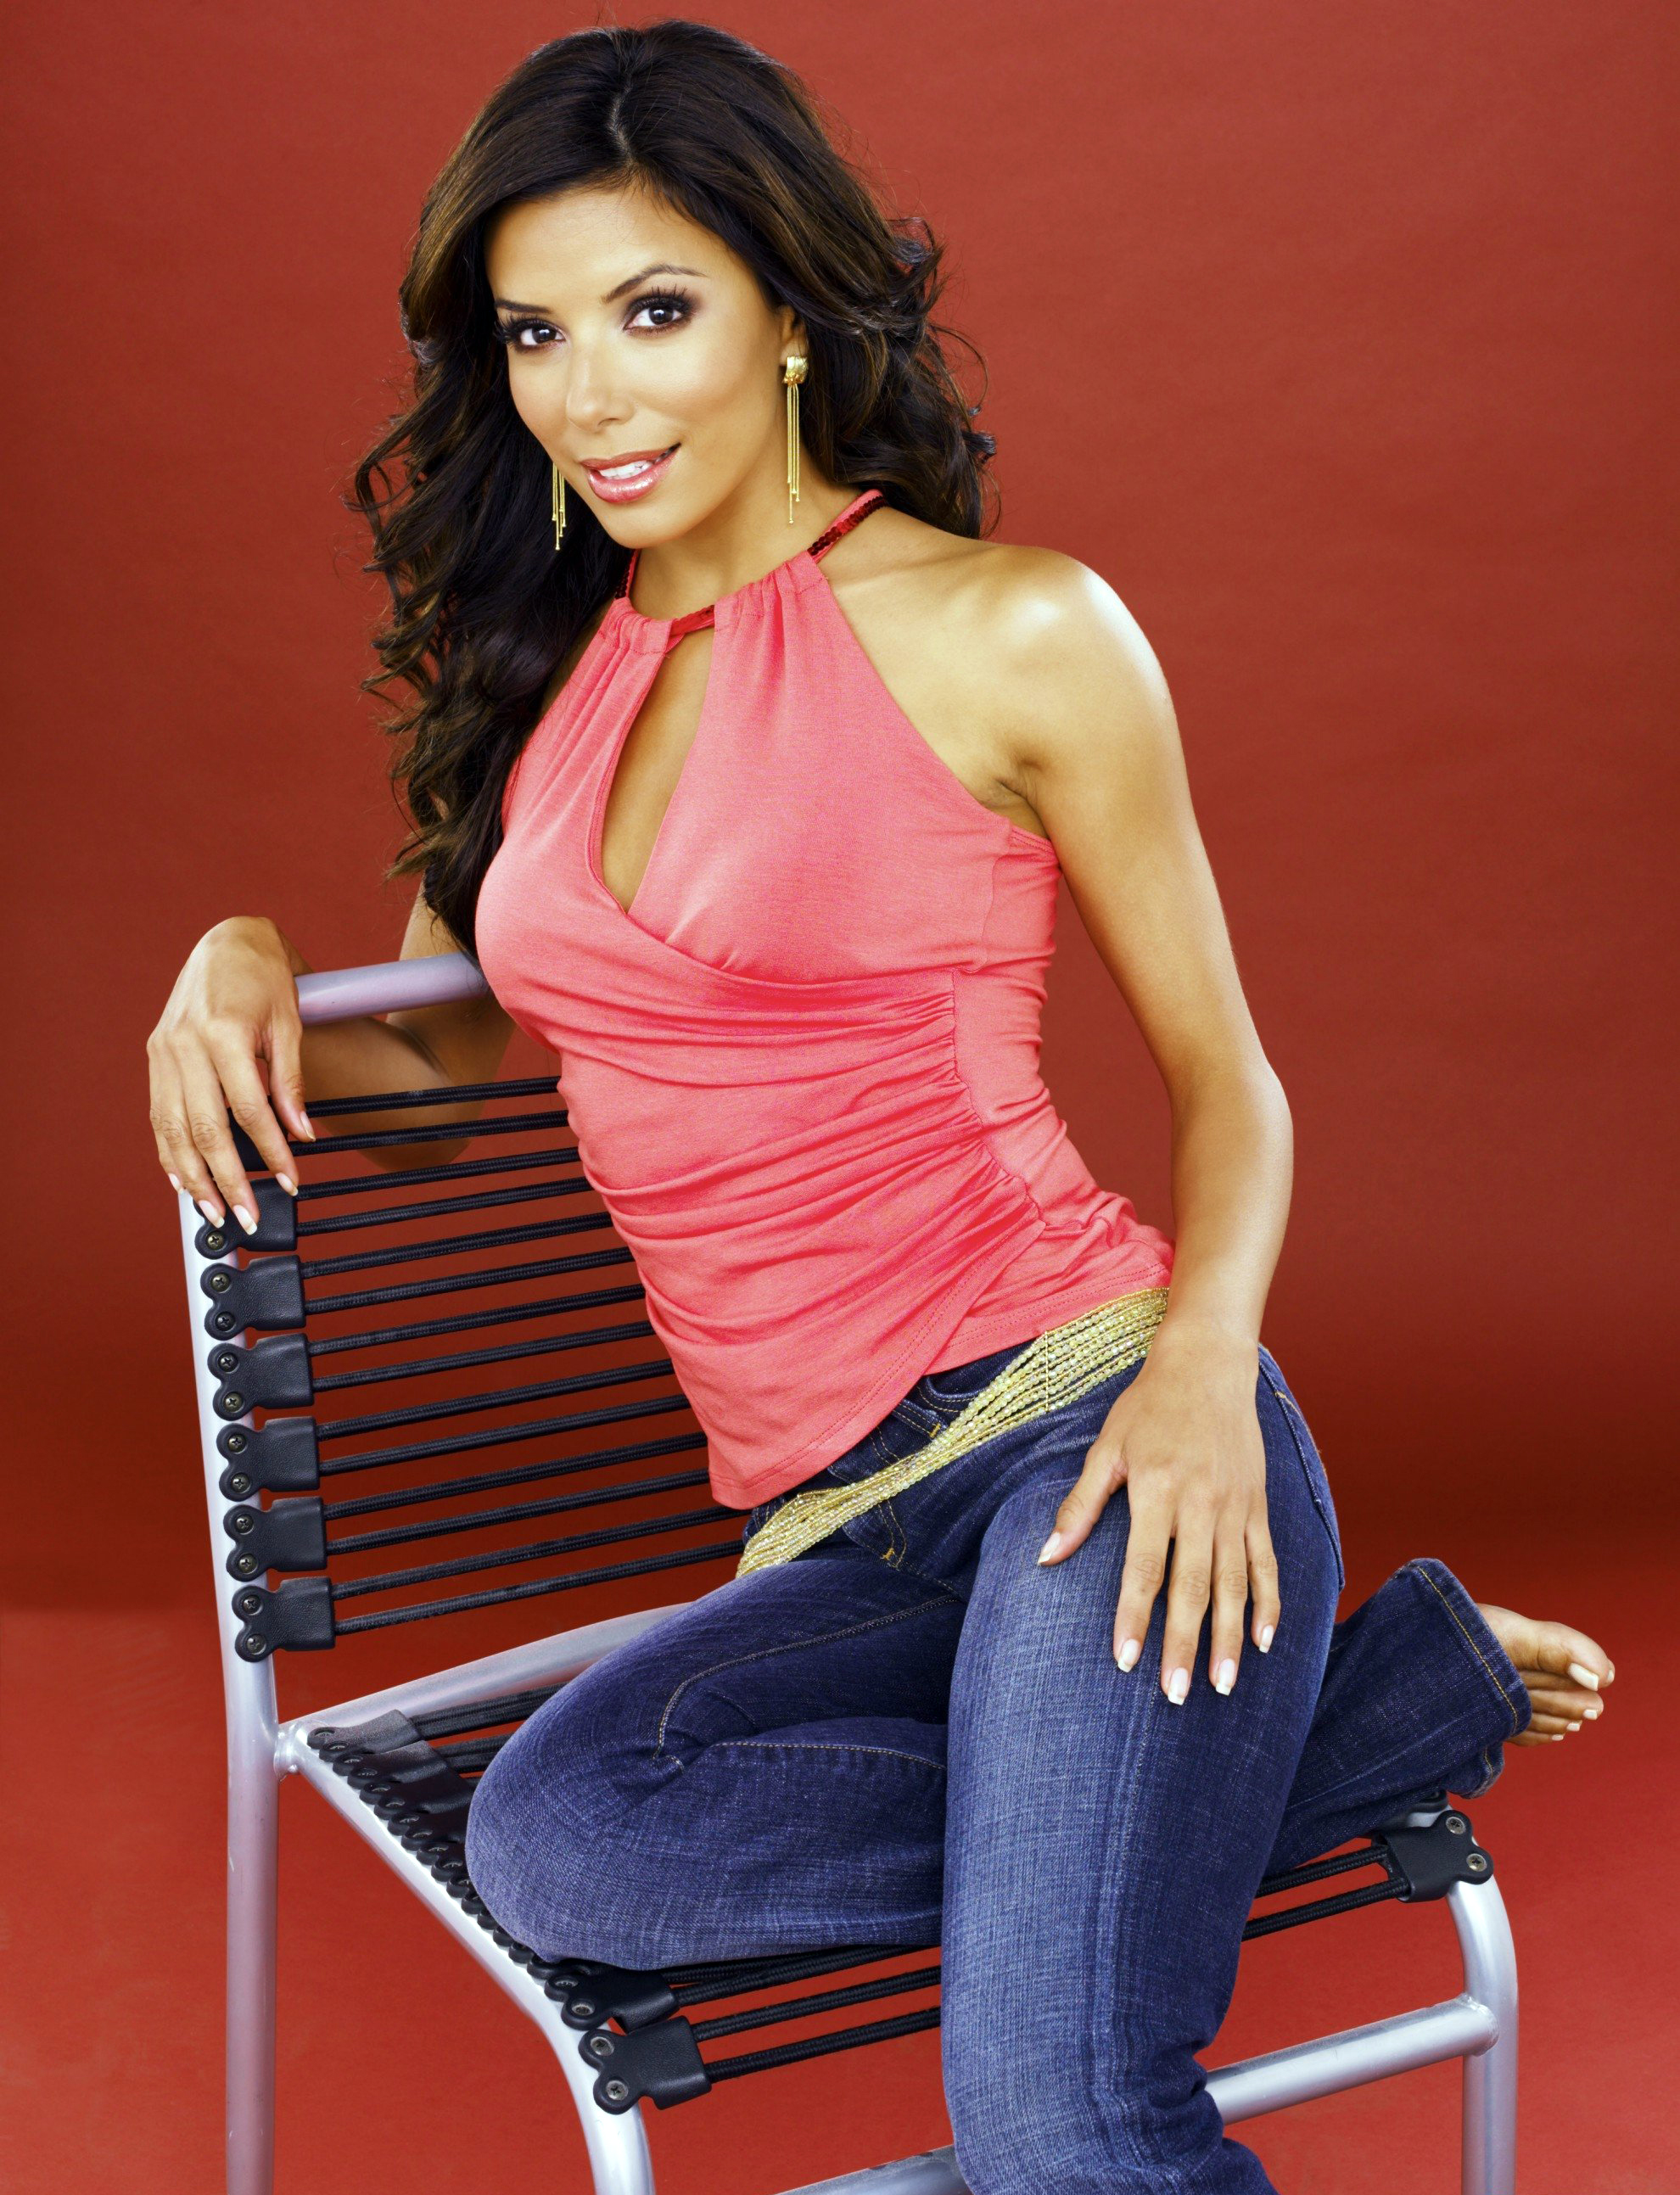 Desperate housewives eva longoria having sex on a table 9